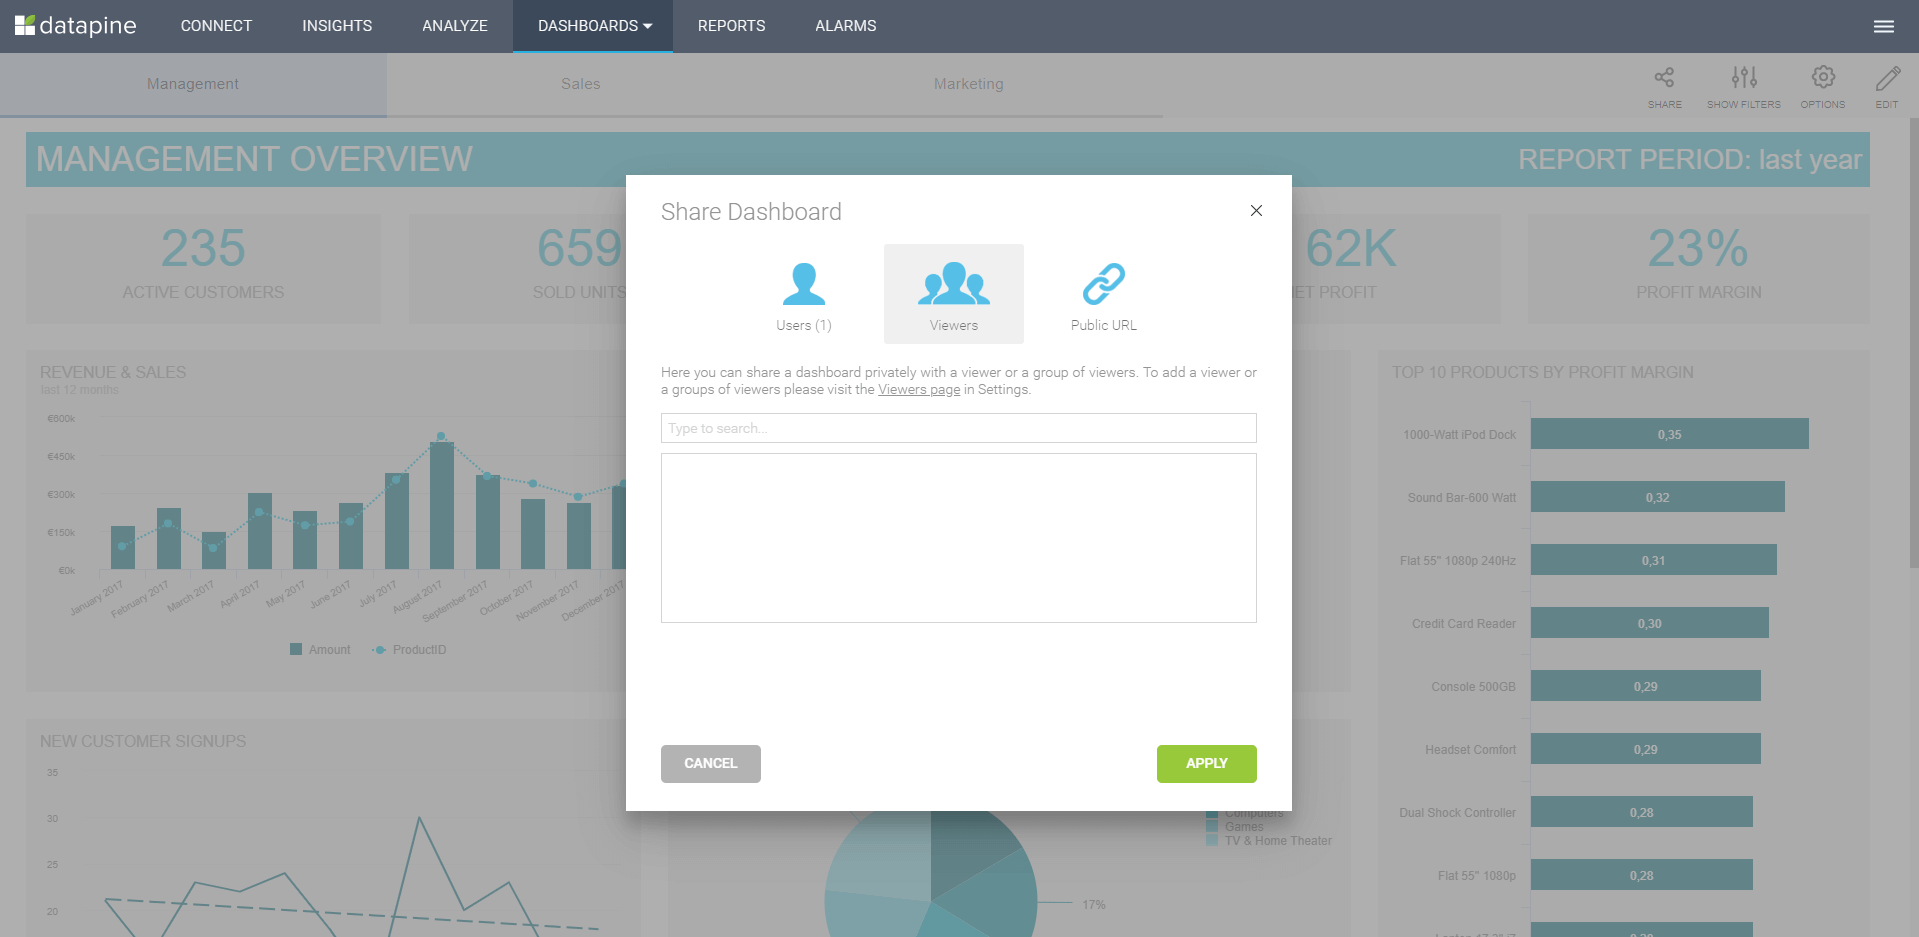 Sharing options with datapine's dashboards